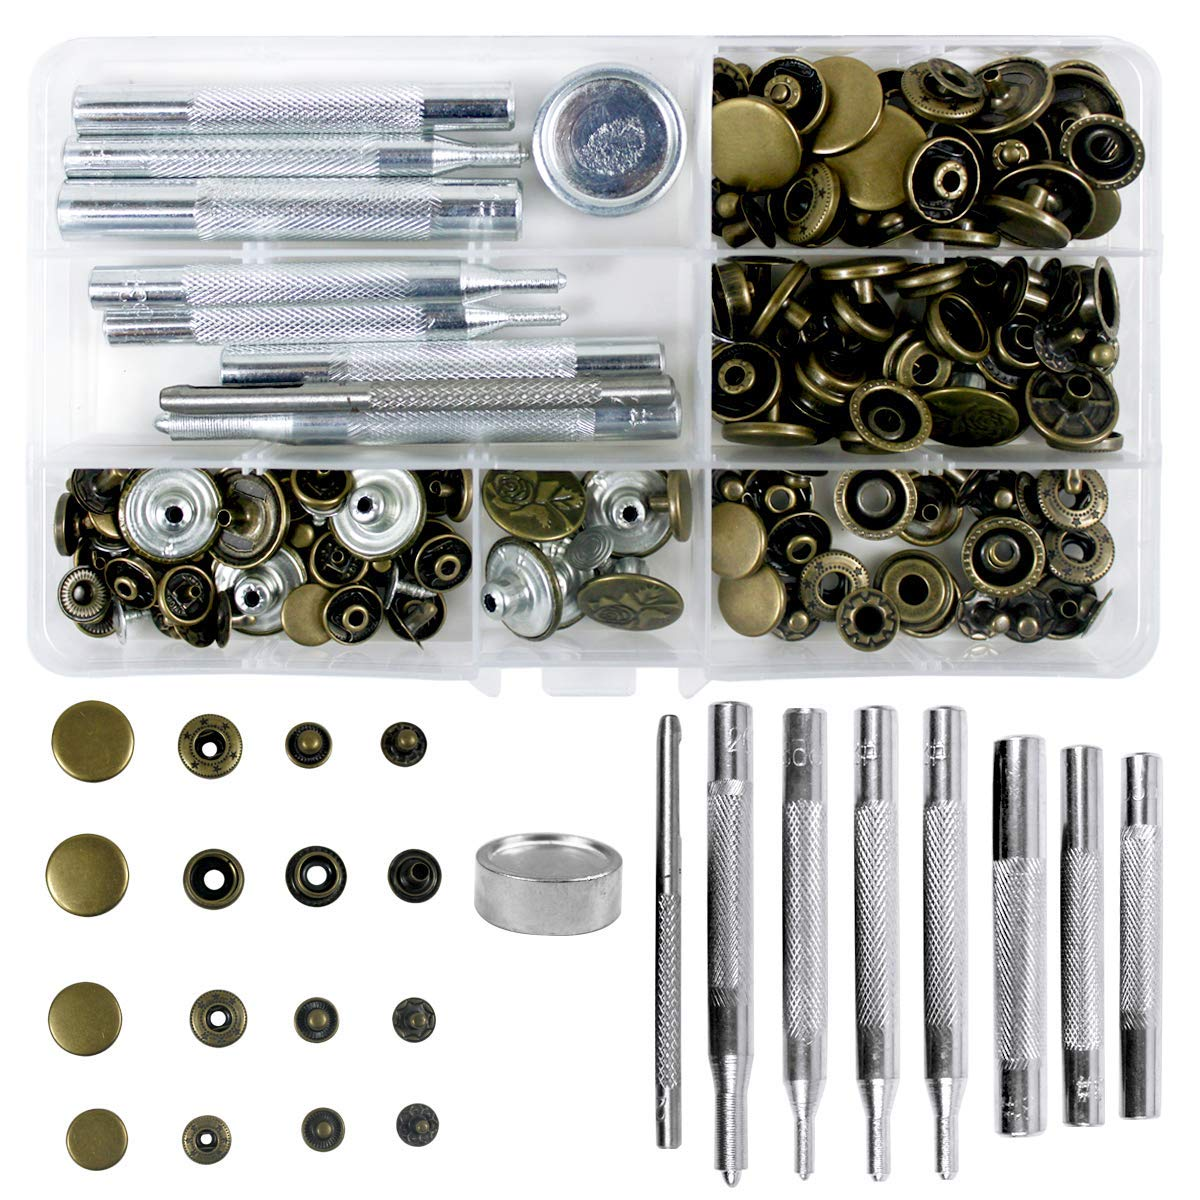 50 Set 4 Sizes Leather Rivets Single Cap Rivet Tubular Metal Studs With 9 Pieces Fixing Tool For Diy Leather Craft, Rivets Rep(China)